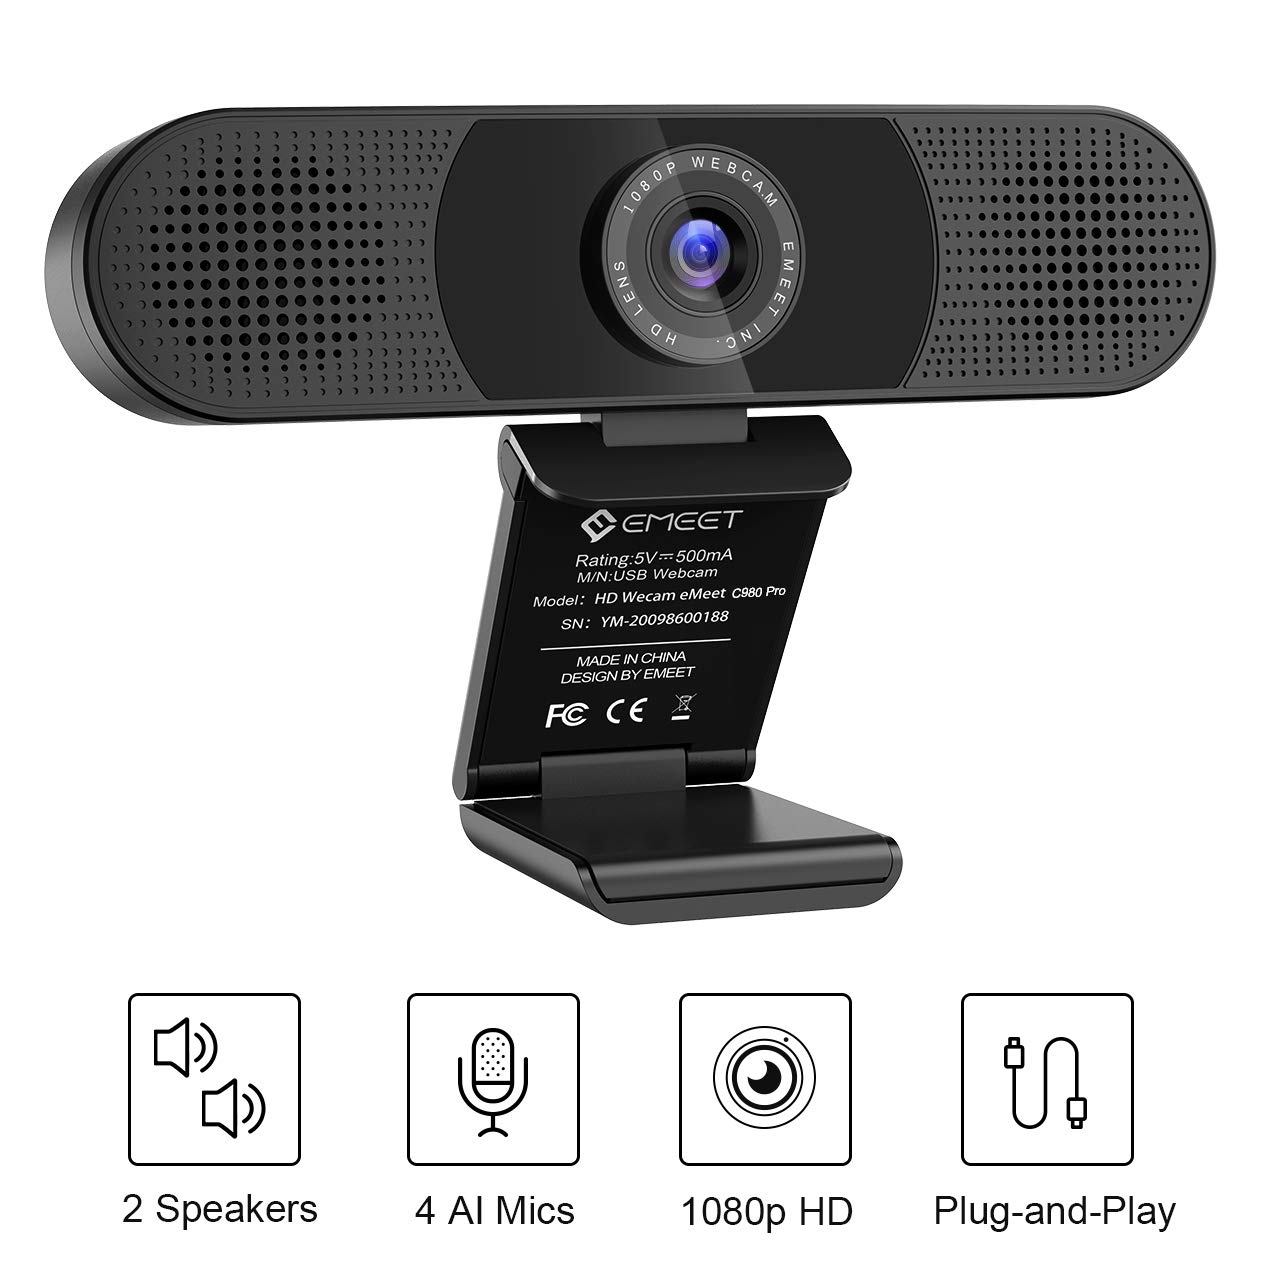 3 in 1 Webcam - eMeet C980 Pro HD Webcam, 2 Speakers and 4 Built-in Omnidirectional Microphones arrays, HD 1080P Webcam for Video Conferencing, Streaming, Noise Reduction, Plug & Play, w/Webcam Cover by eMeet